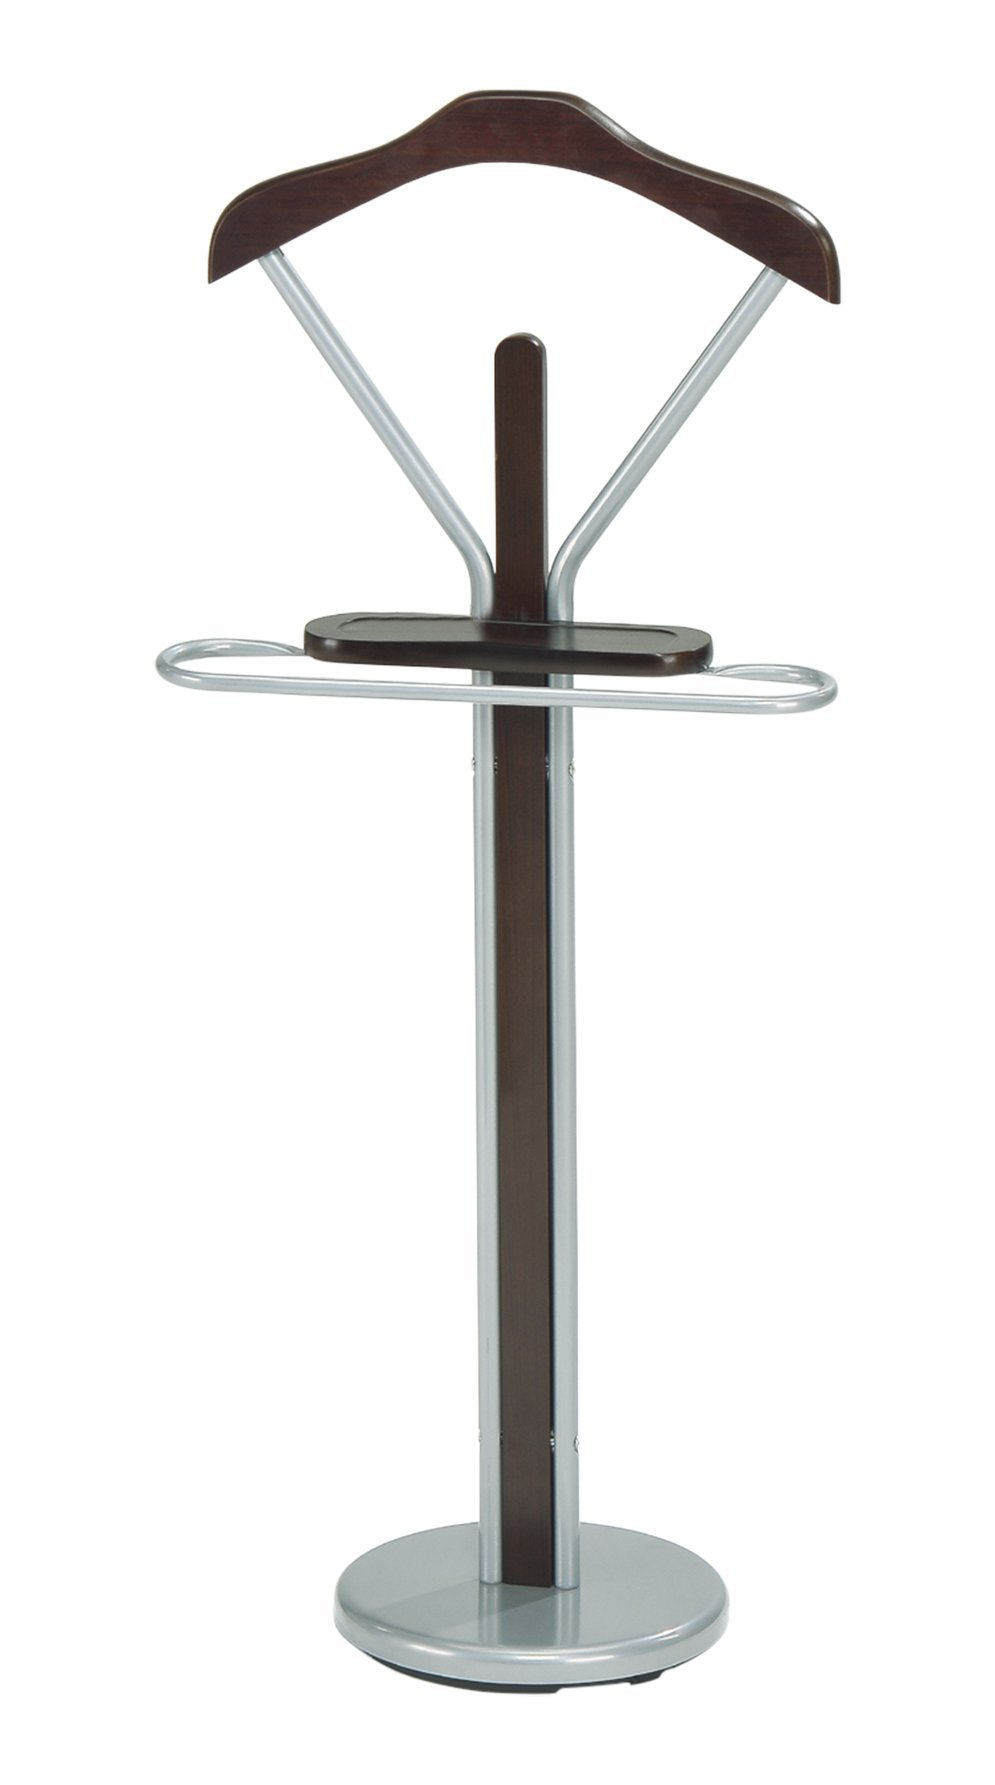 InRoom Designs CH-4089 Kings Brand Silver Finish Wood and Metal Suit Valet Rack Stand Organizer, Walnut by InRoom Designs (Image #3)